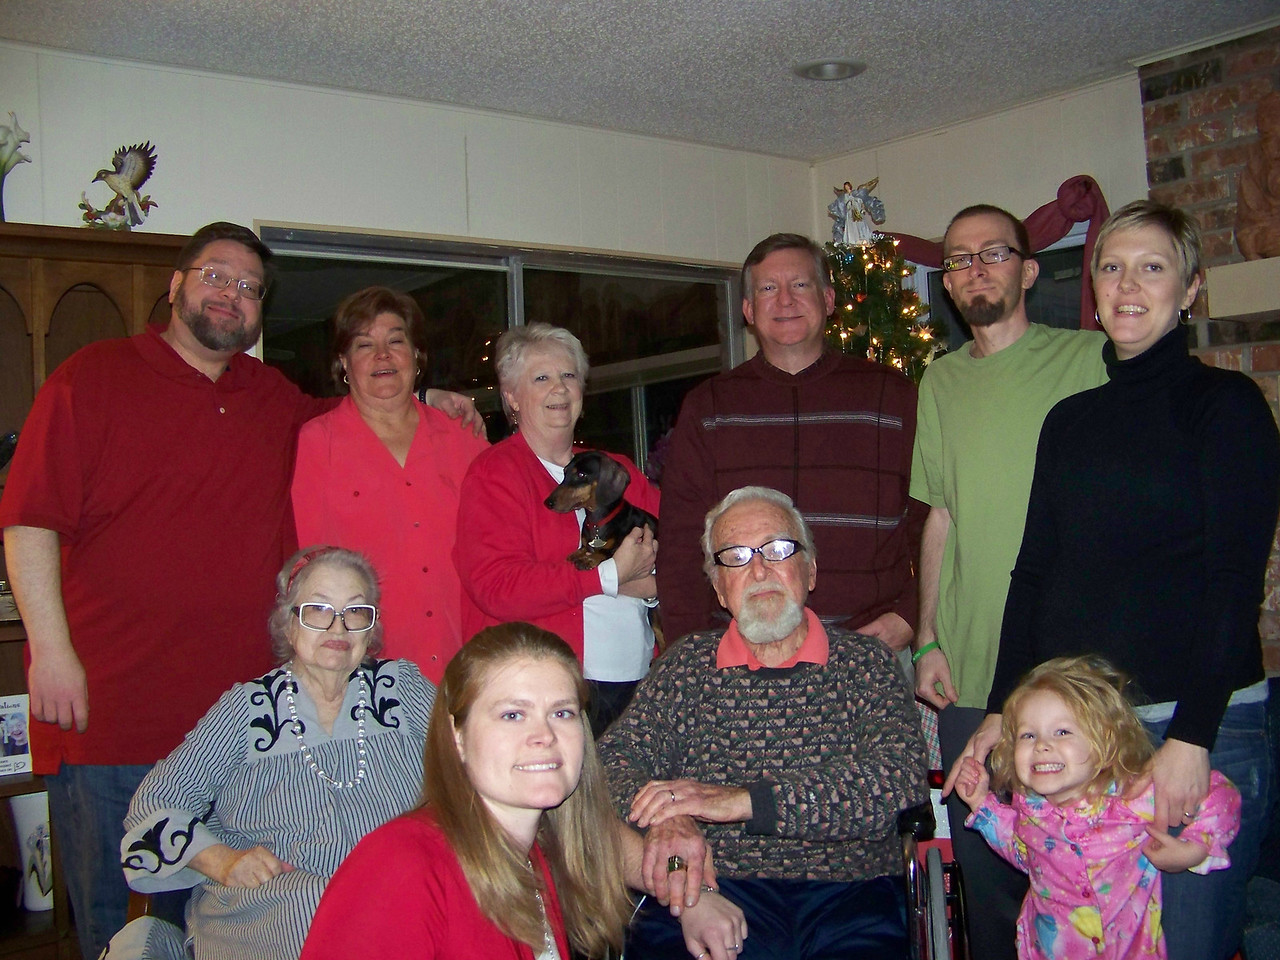 Our 2011 Christmas portrait, take one.  Standing, left to right:  Jon, Wendy, Sheri holding Oscar, Mark, Josh, Kalyn.  In front left to right:  Aunt Pet, Jenna, Dad, and Embyr.